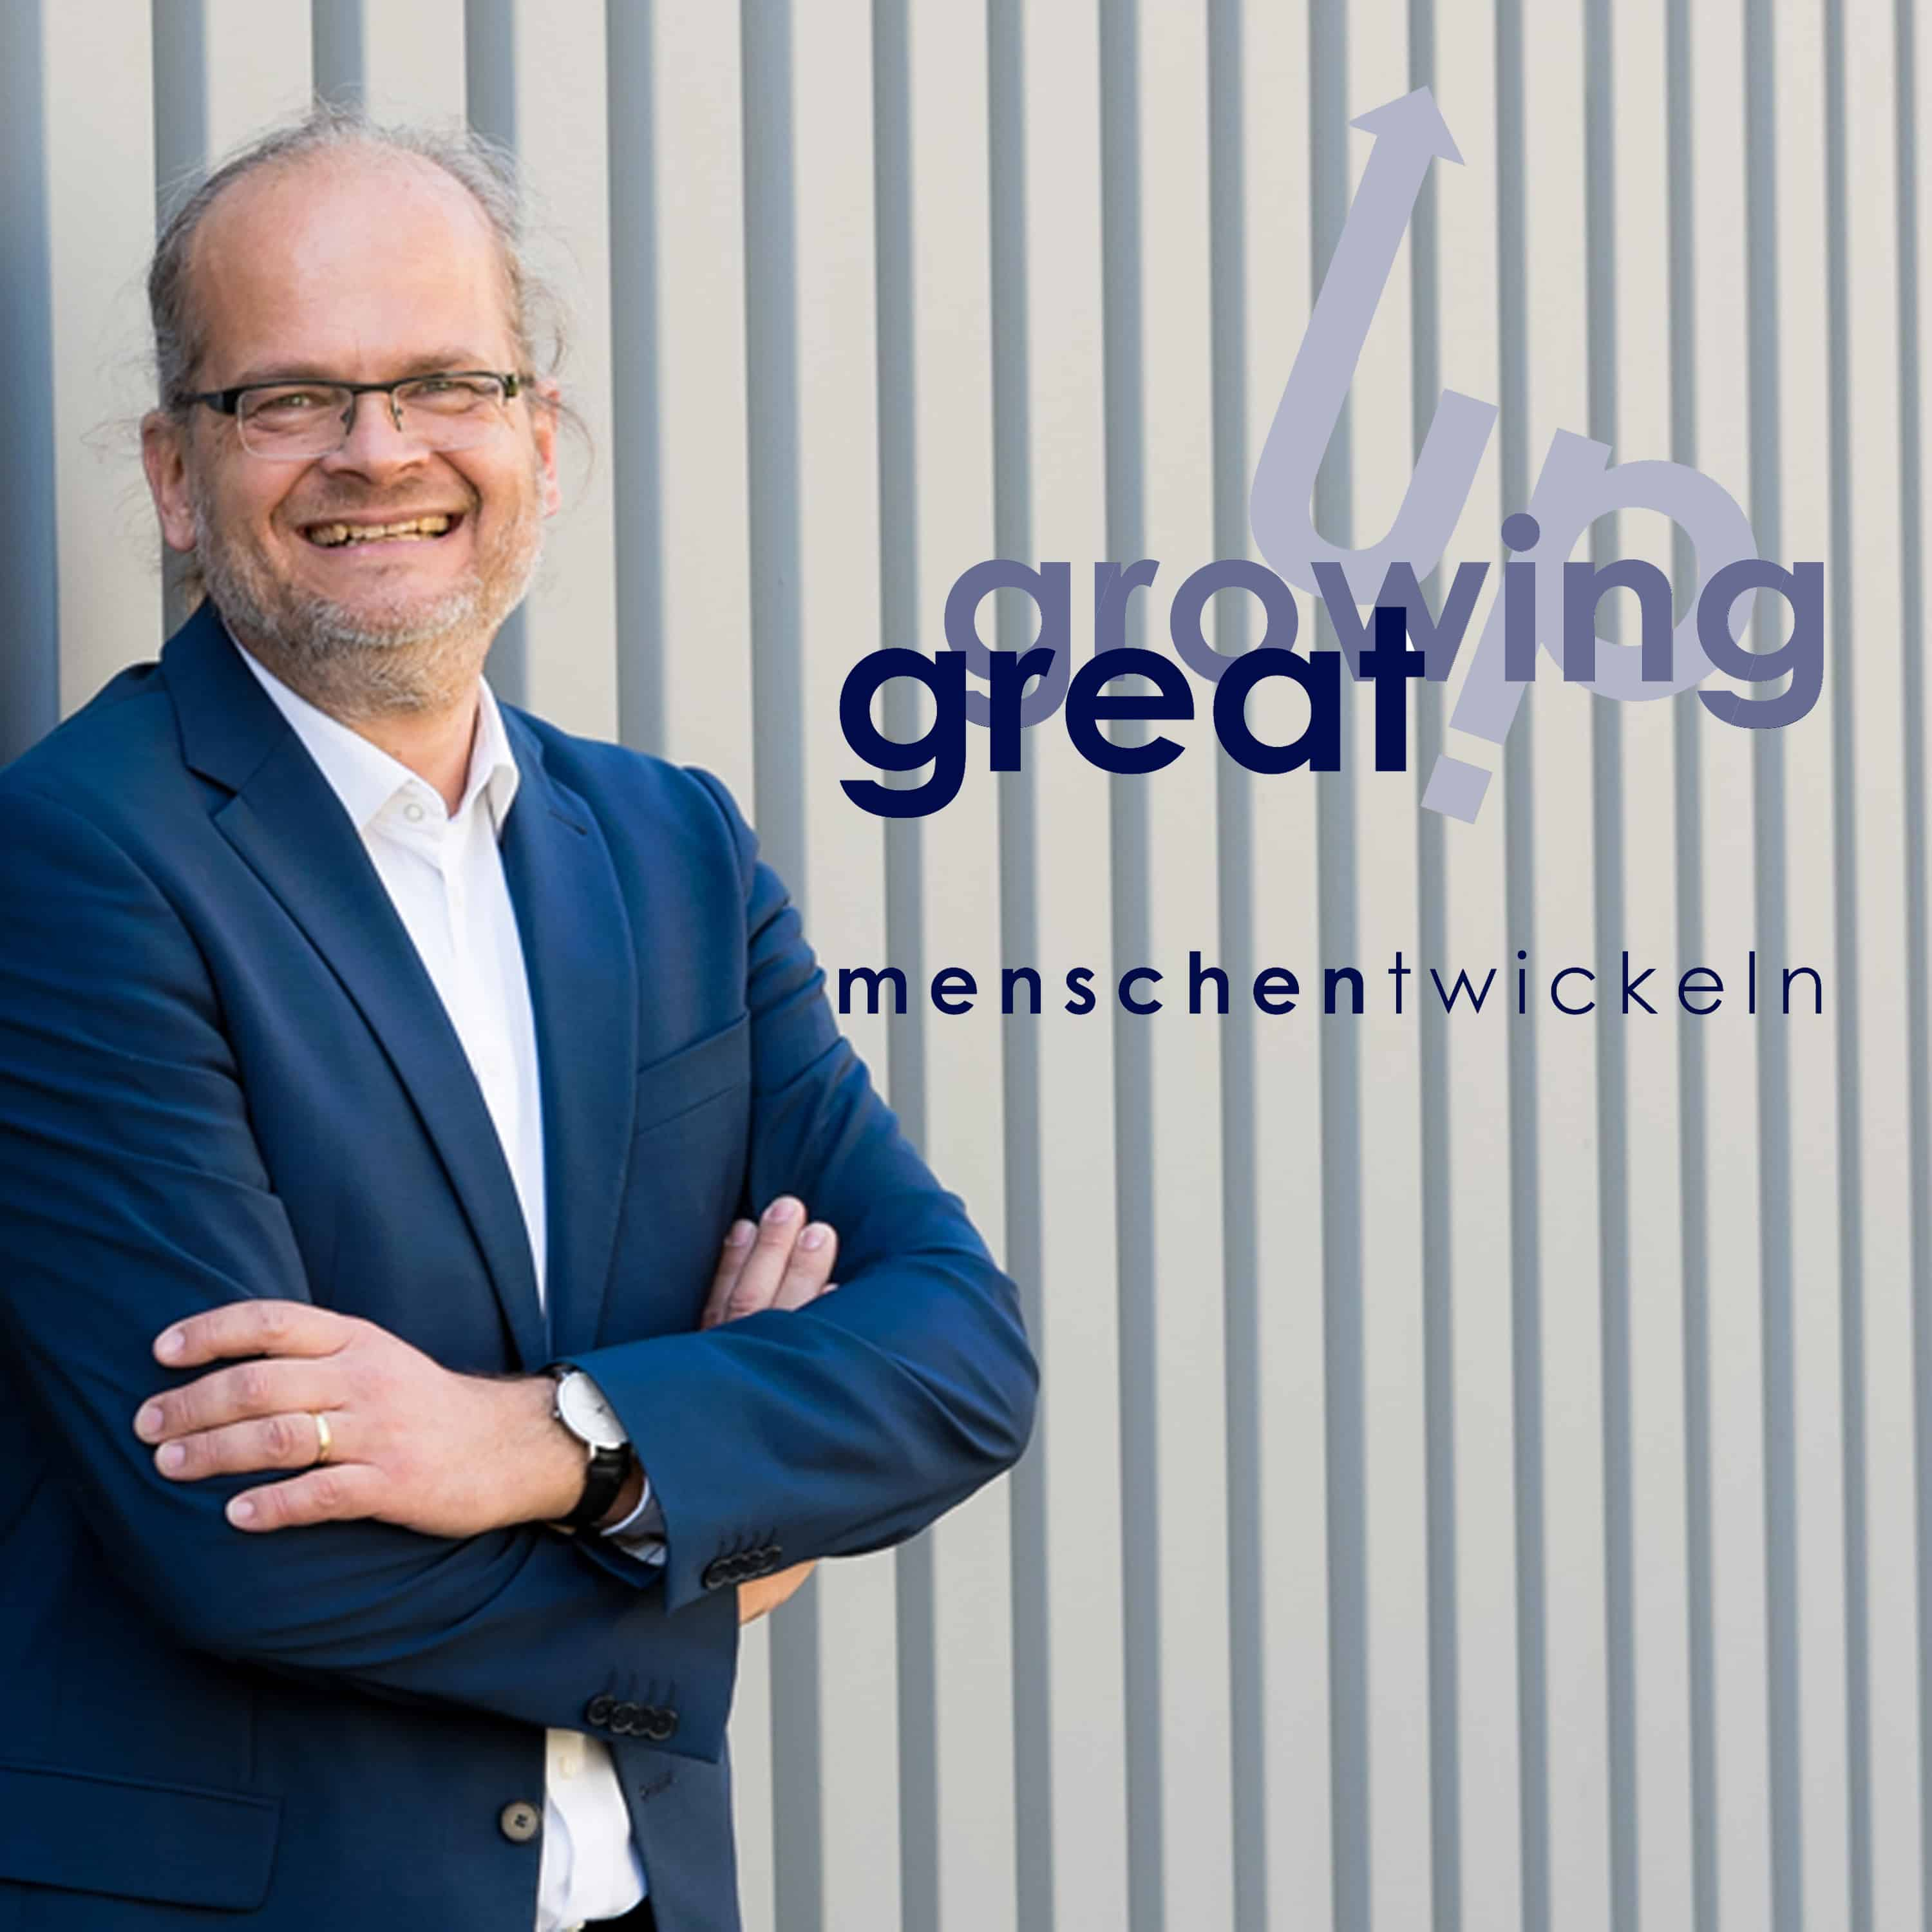 Great Growing Up - Der Podcast für Beziehungskompetenz im Business